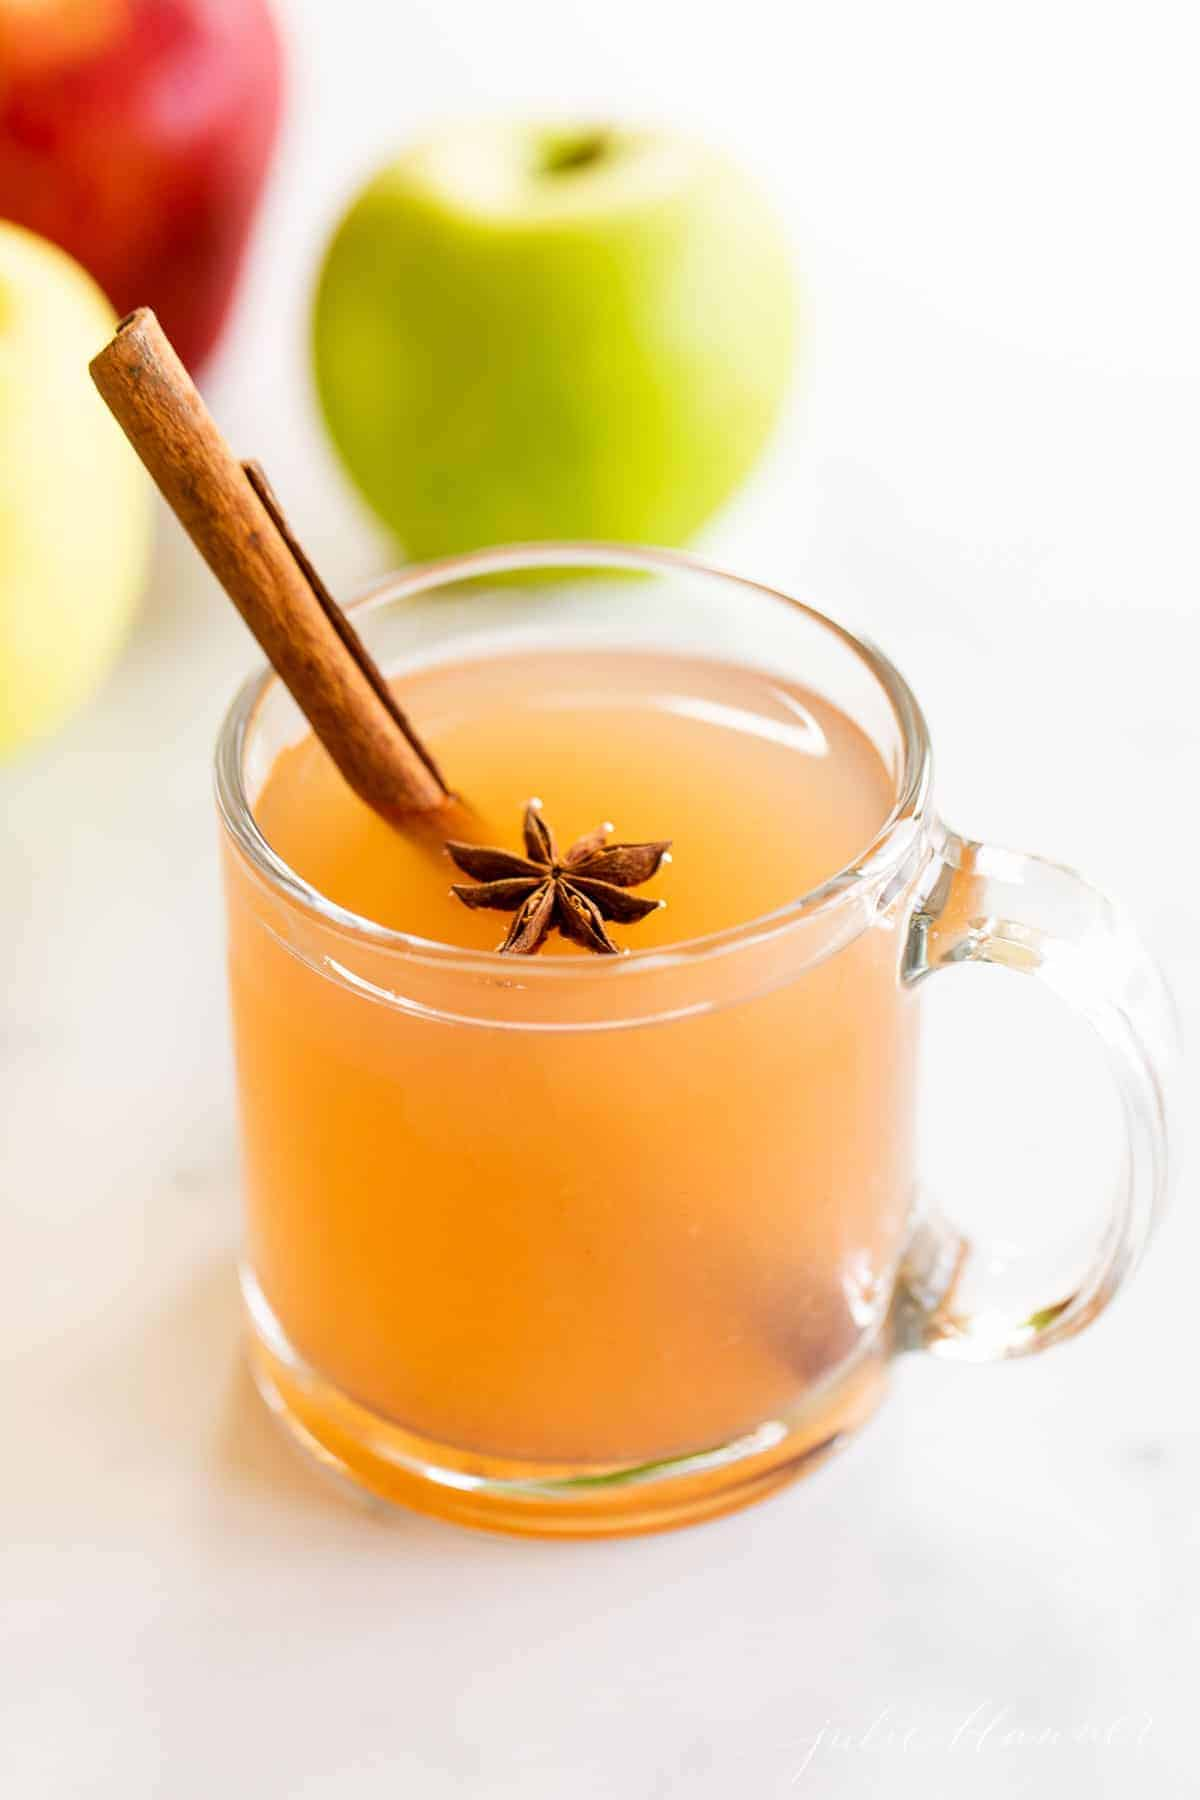 A marble surface with clear mugs full of homemade apple cider, whole apples to the side.